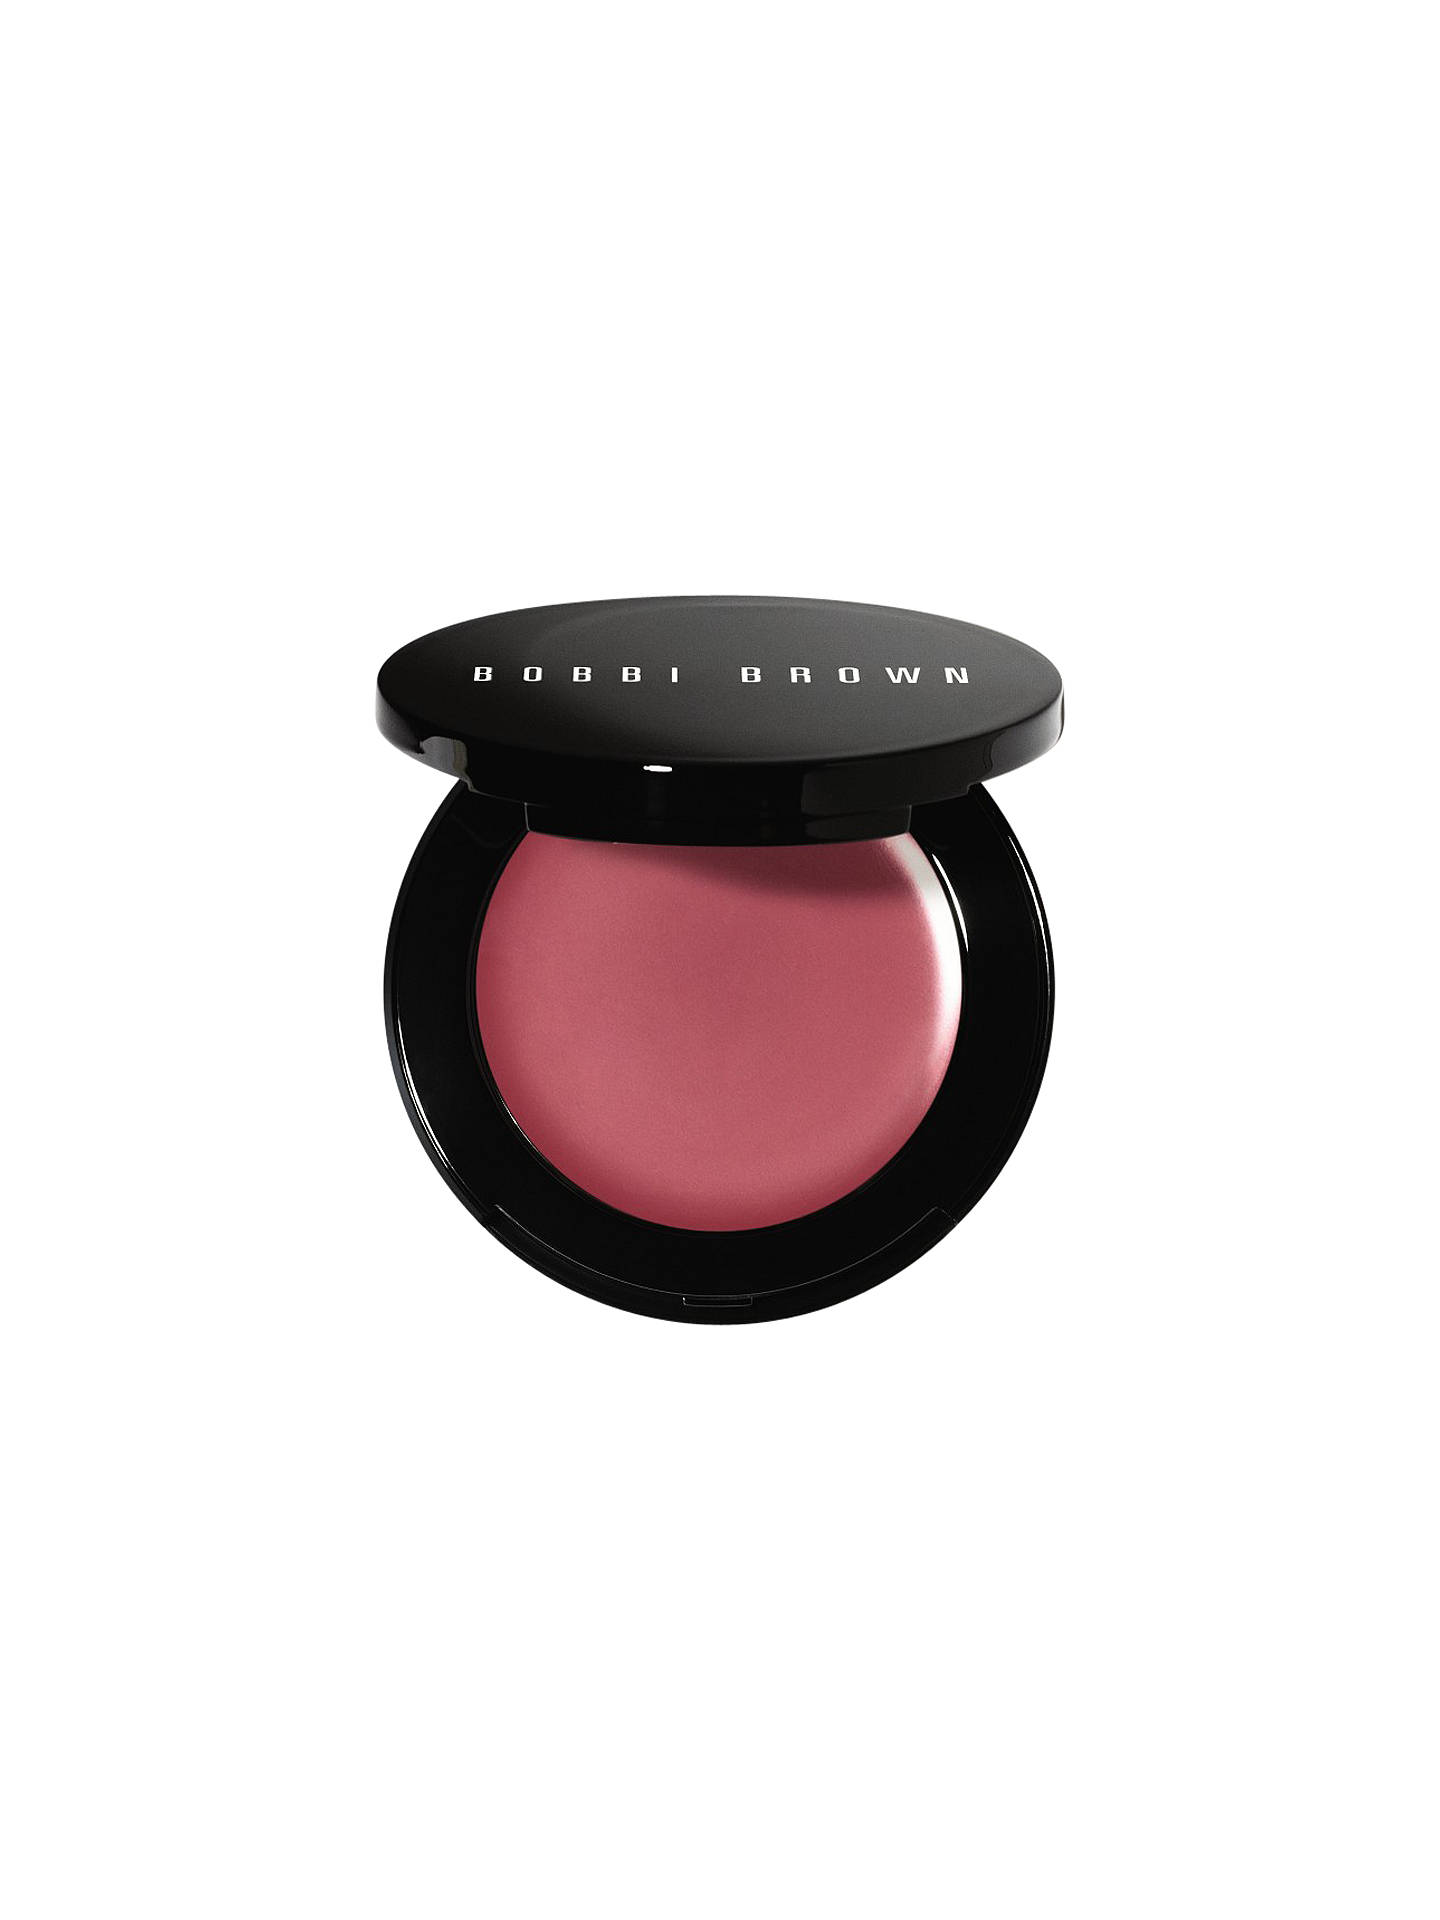 BuyBobbi Brown Pot Rouge for Lips and Cheeks, Blushed Rose Online at johnlewis.com